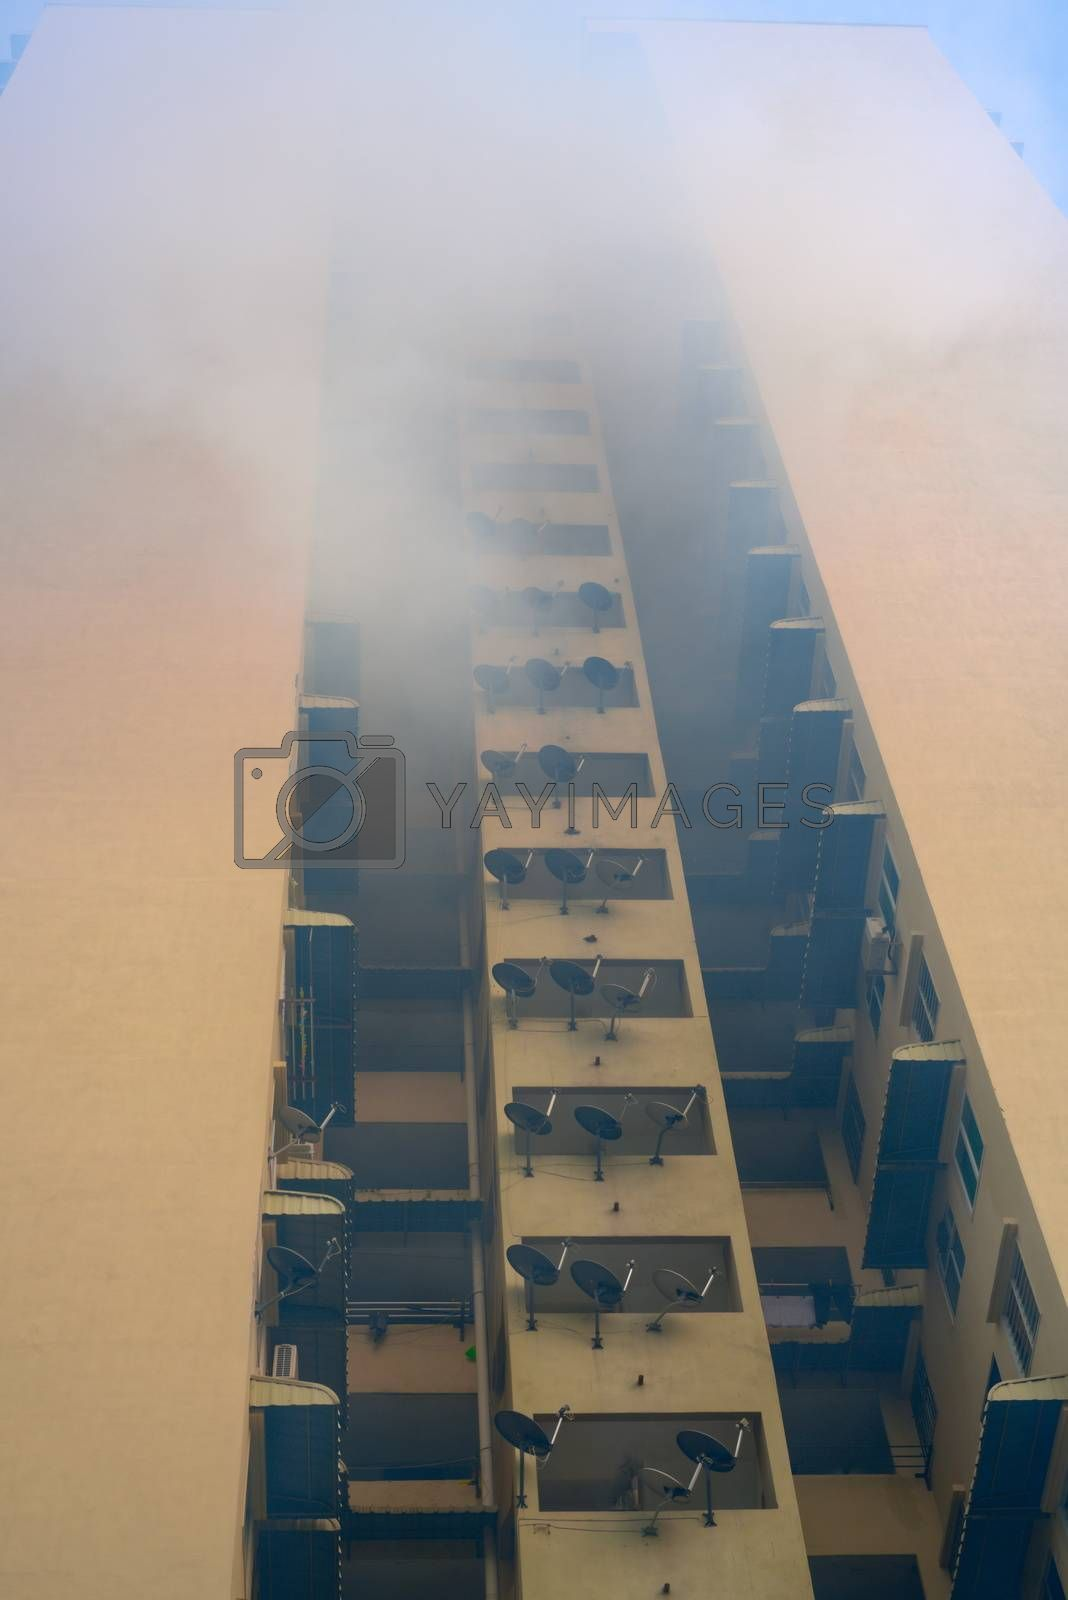 mosquito repellent fumigation on housing building high-rise blocks complex to avoid dengue - view from below